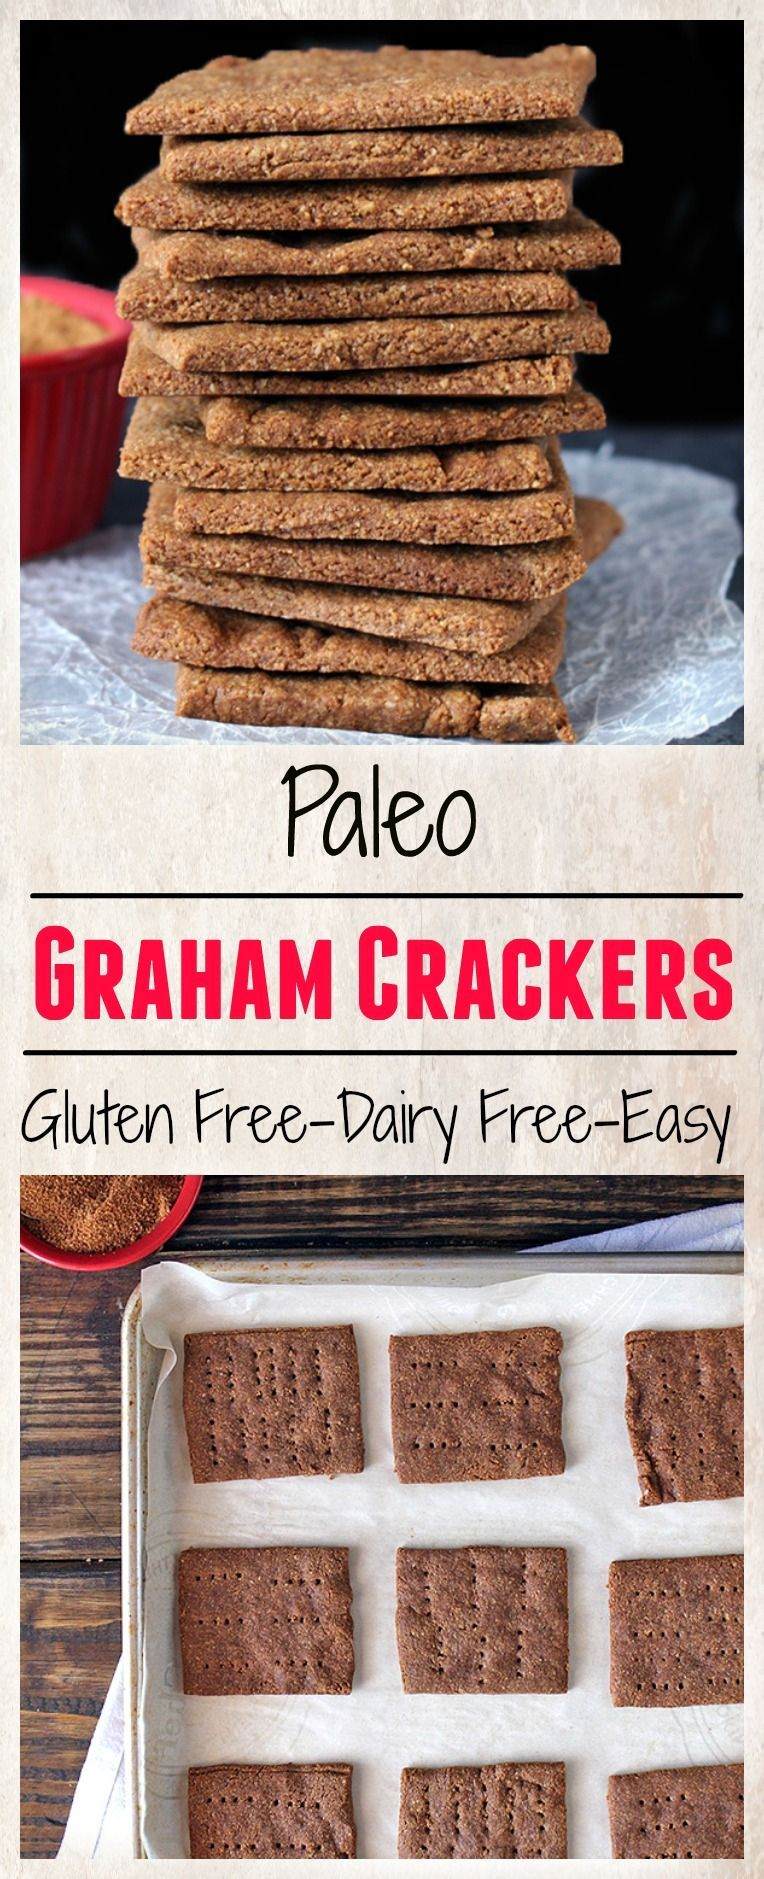 Graham Crackers- easy to make, lightly sweetened, and so delicious! A gluten free, dairy free version of the classic that you will love!